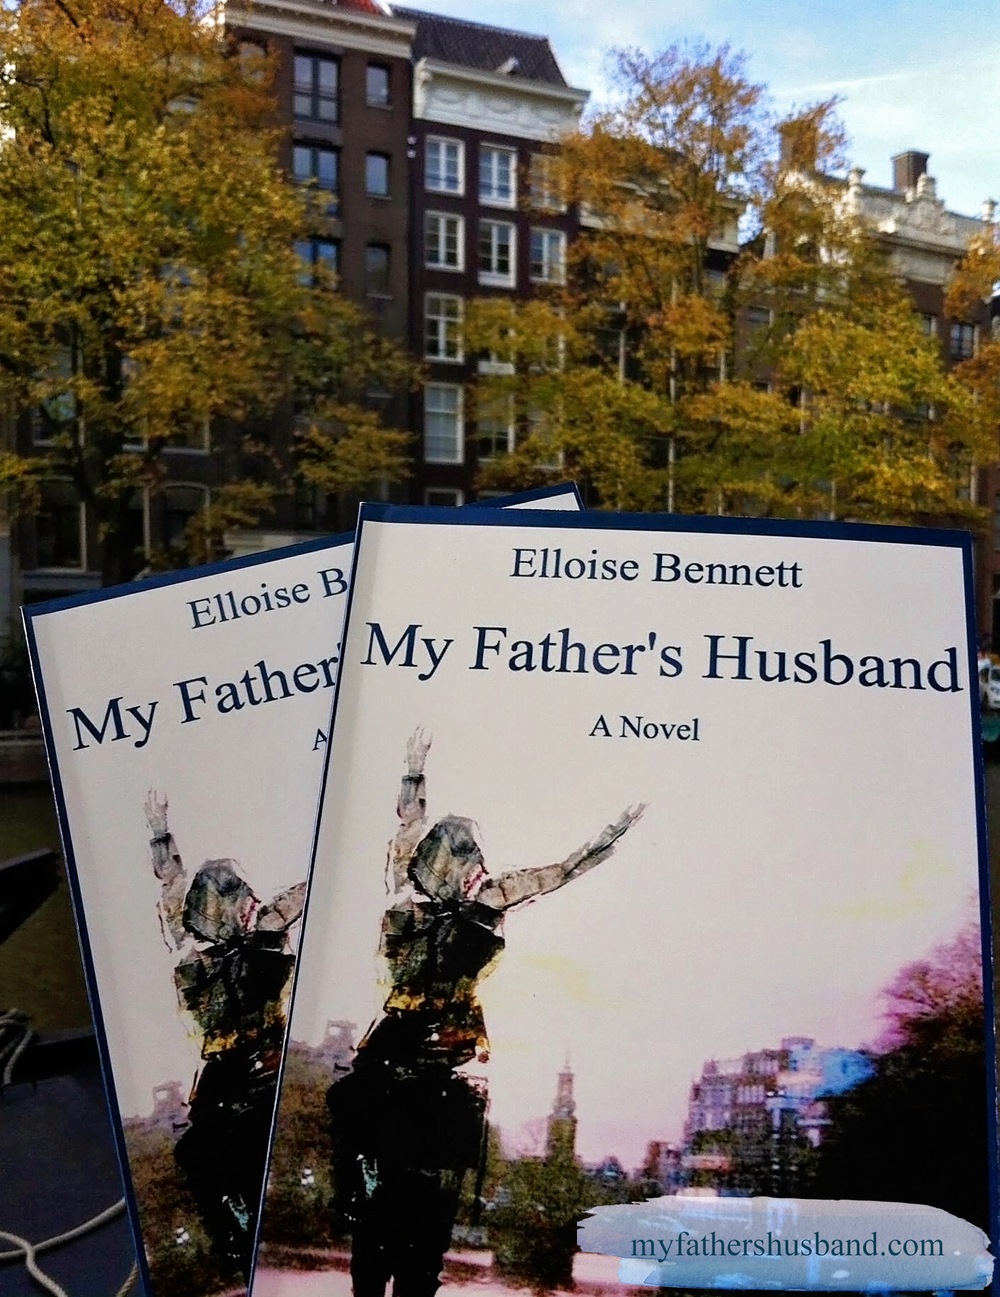 My Father's Husband Amsterdam myfathershusband.com